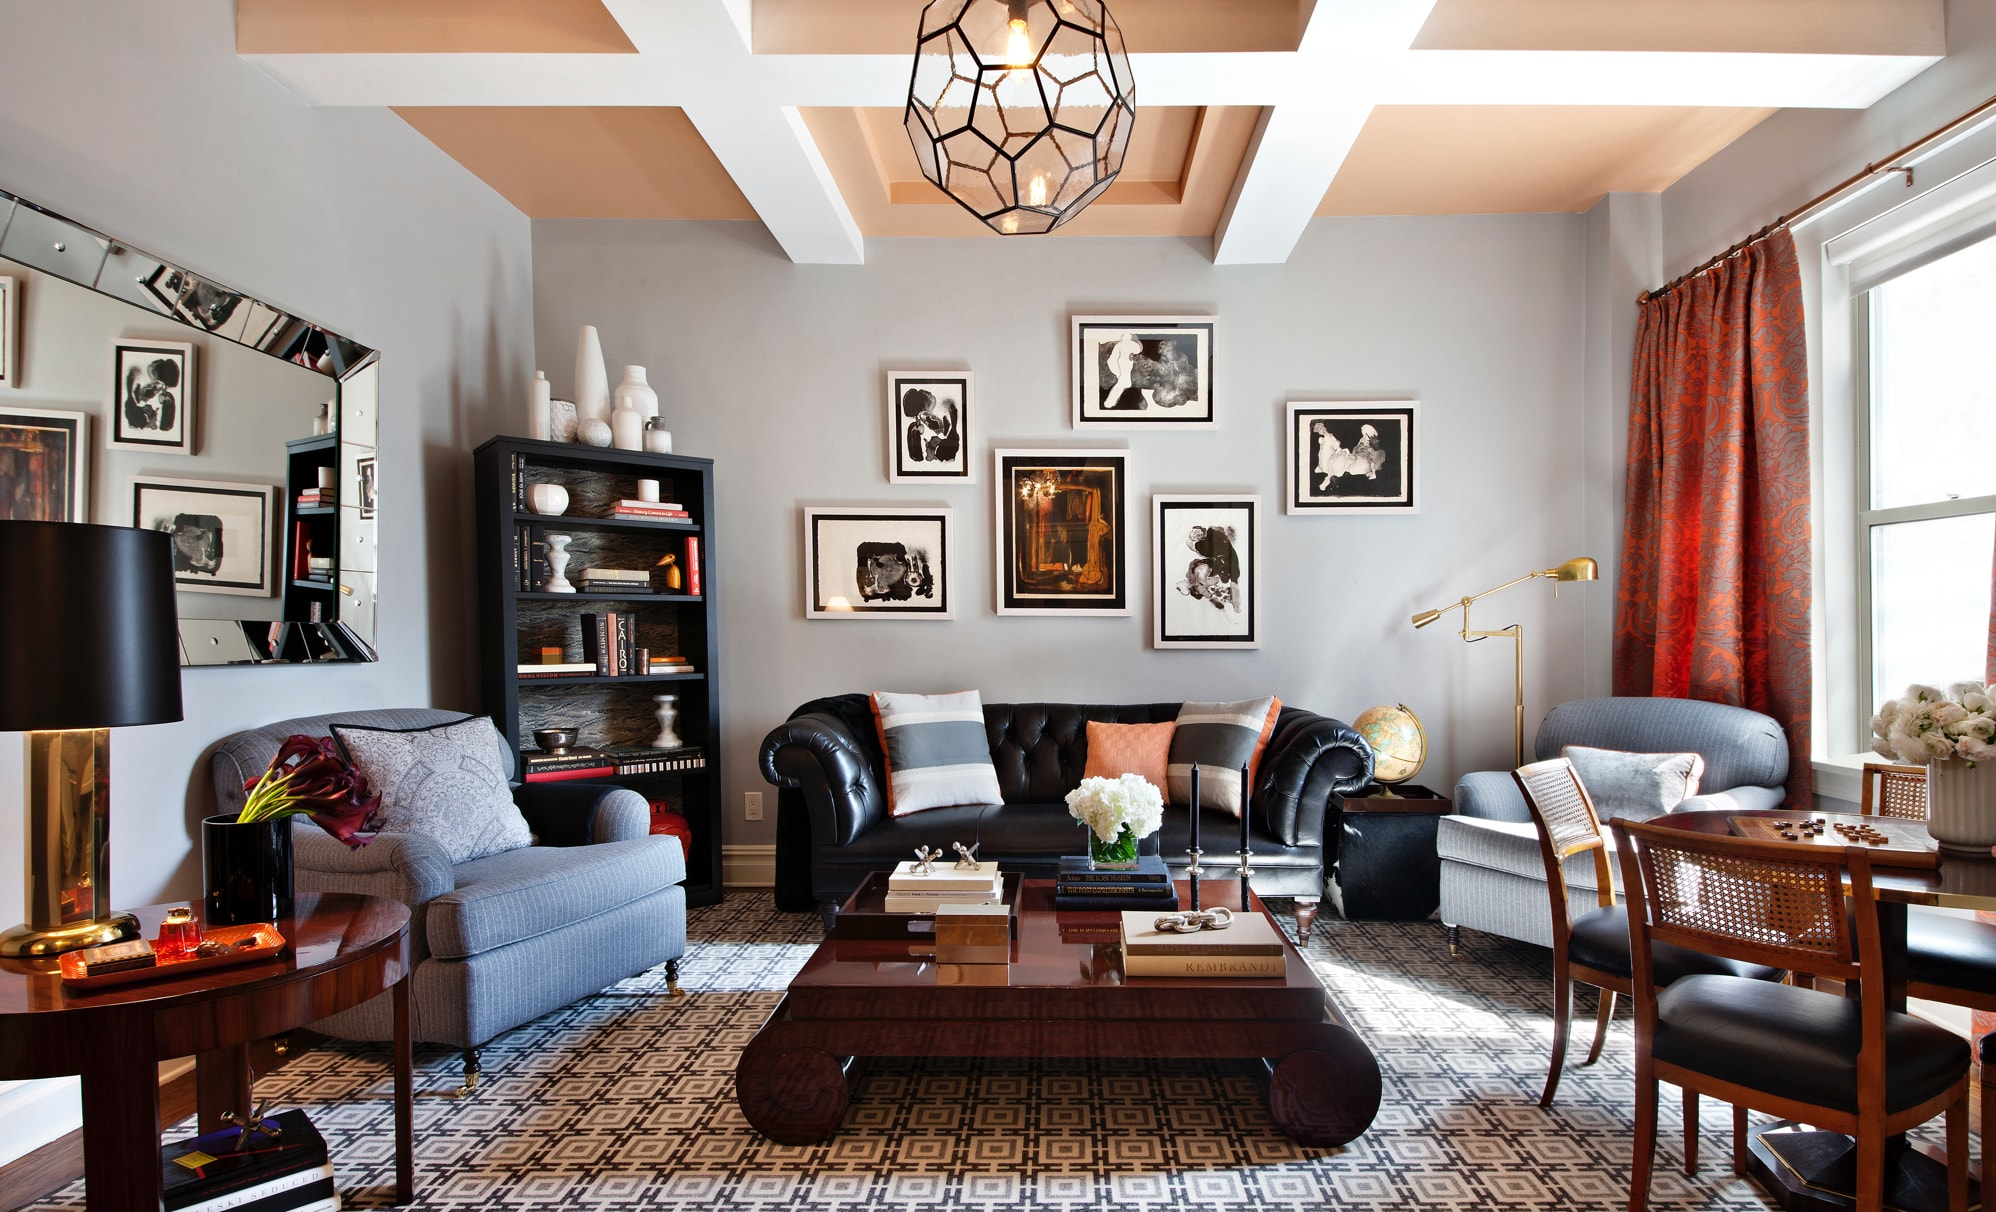 Elegant living room with geometrical light fixture and gallery wall